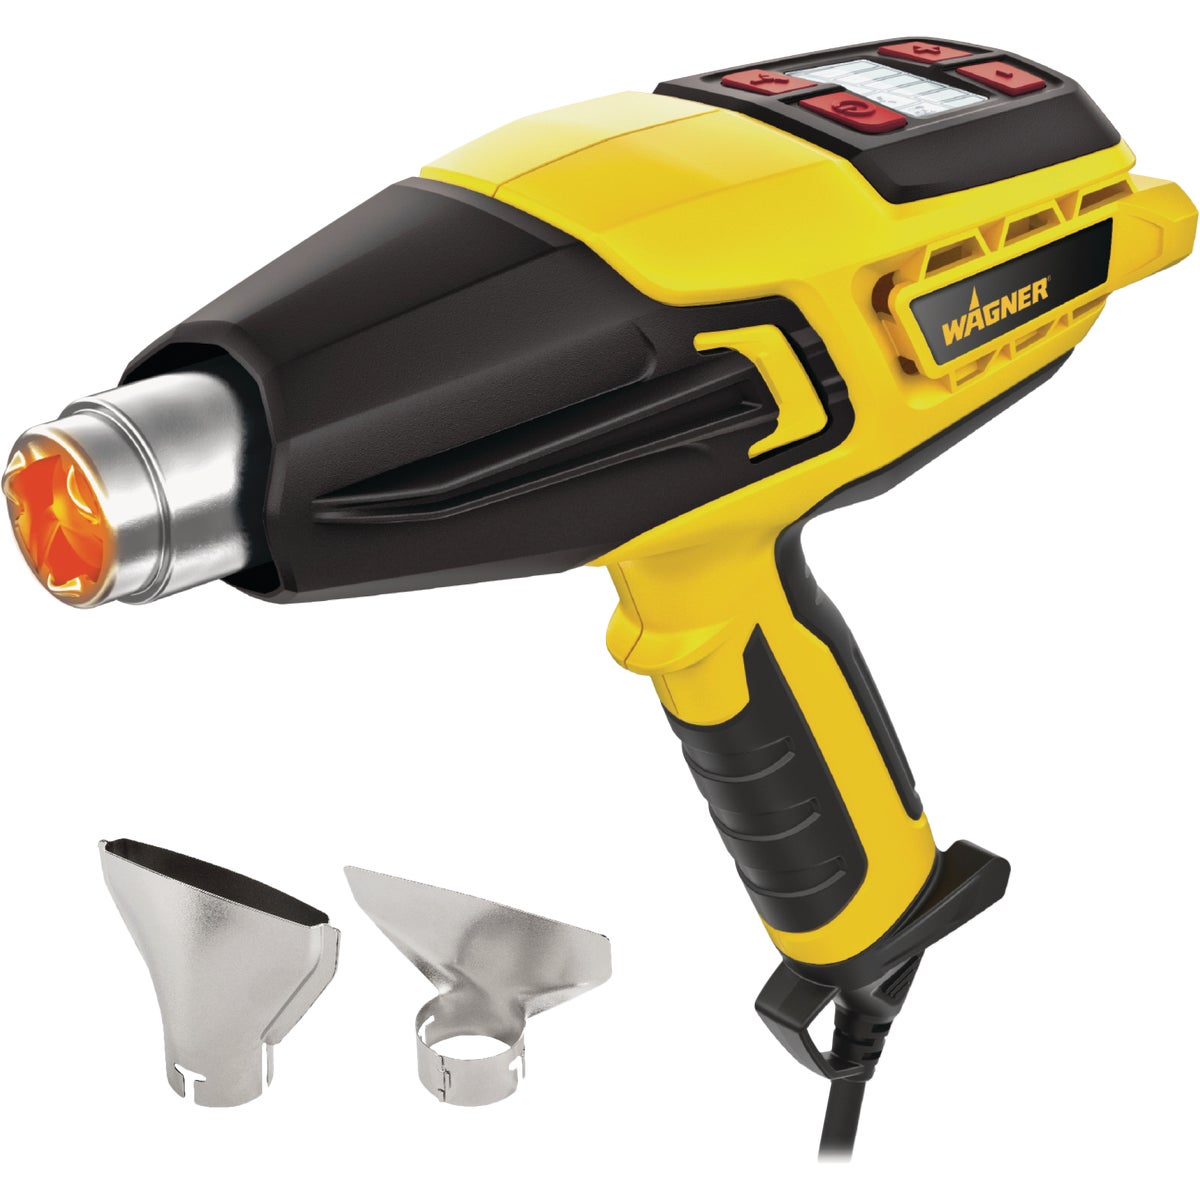 DIGITAL VARIABL HEAT GUN - HT3500 by Wagner Spray Tech